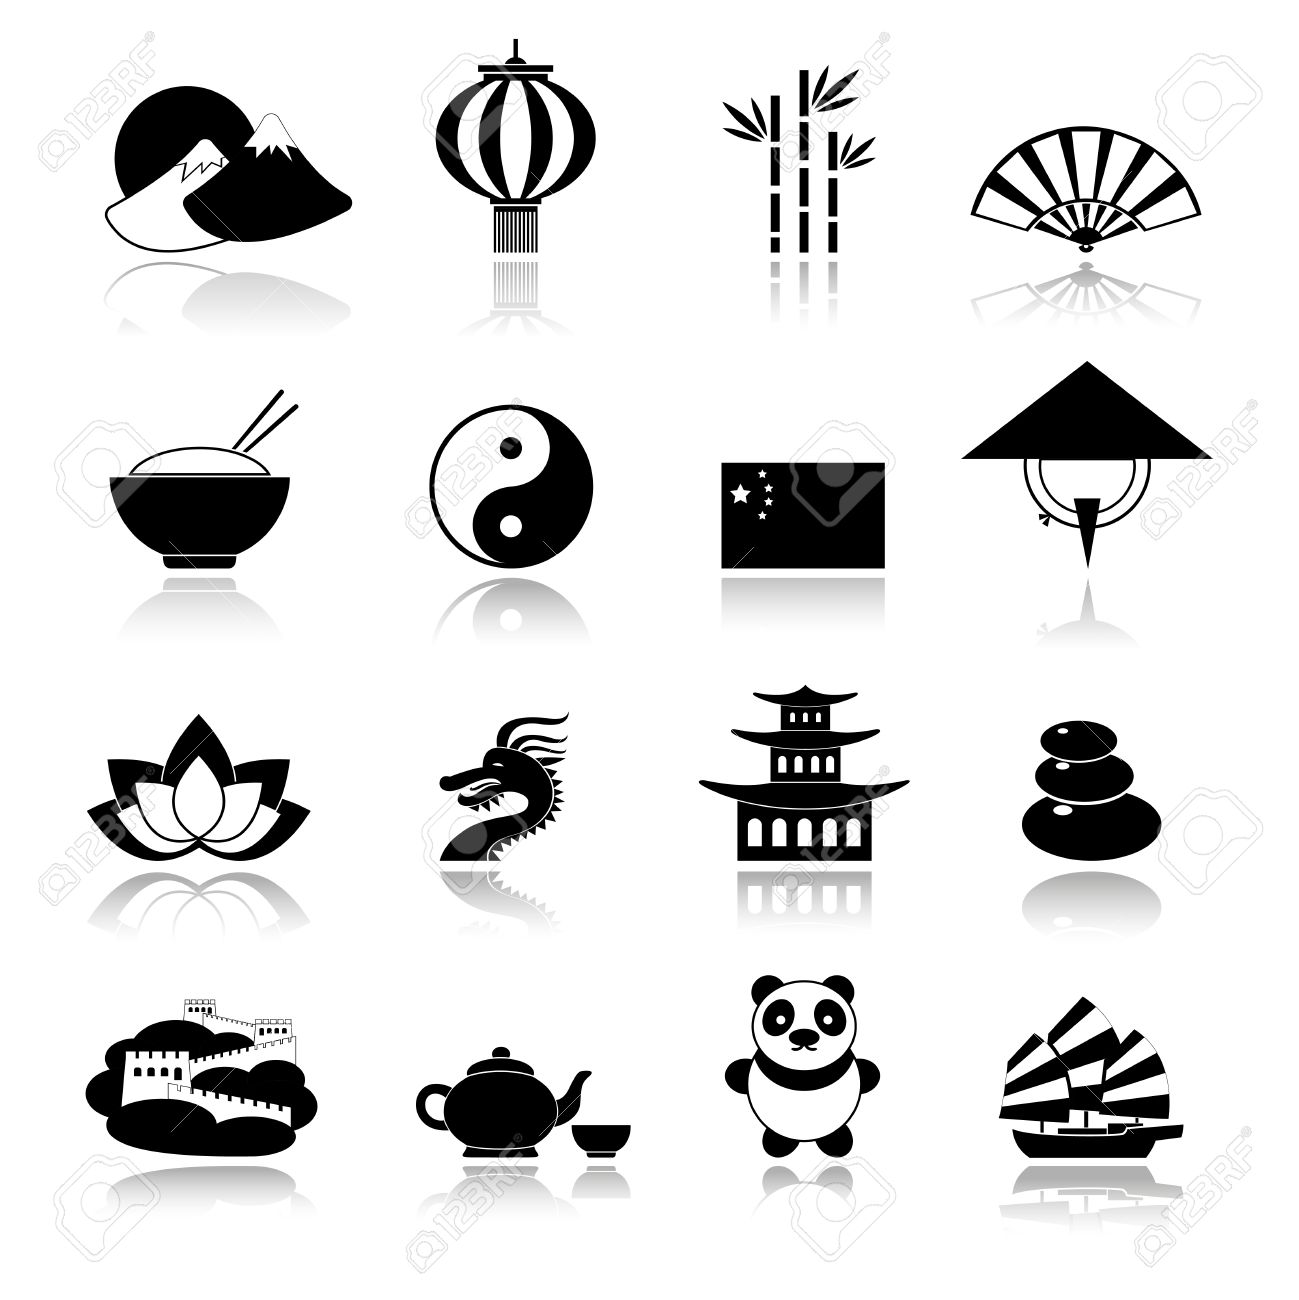 China Travel Traditional Culture Symbols Black Icons Set With